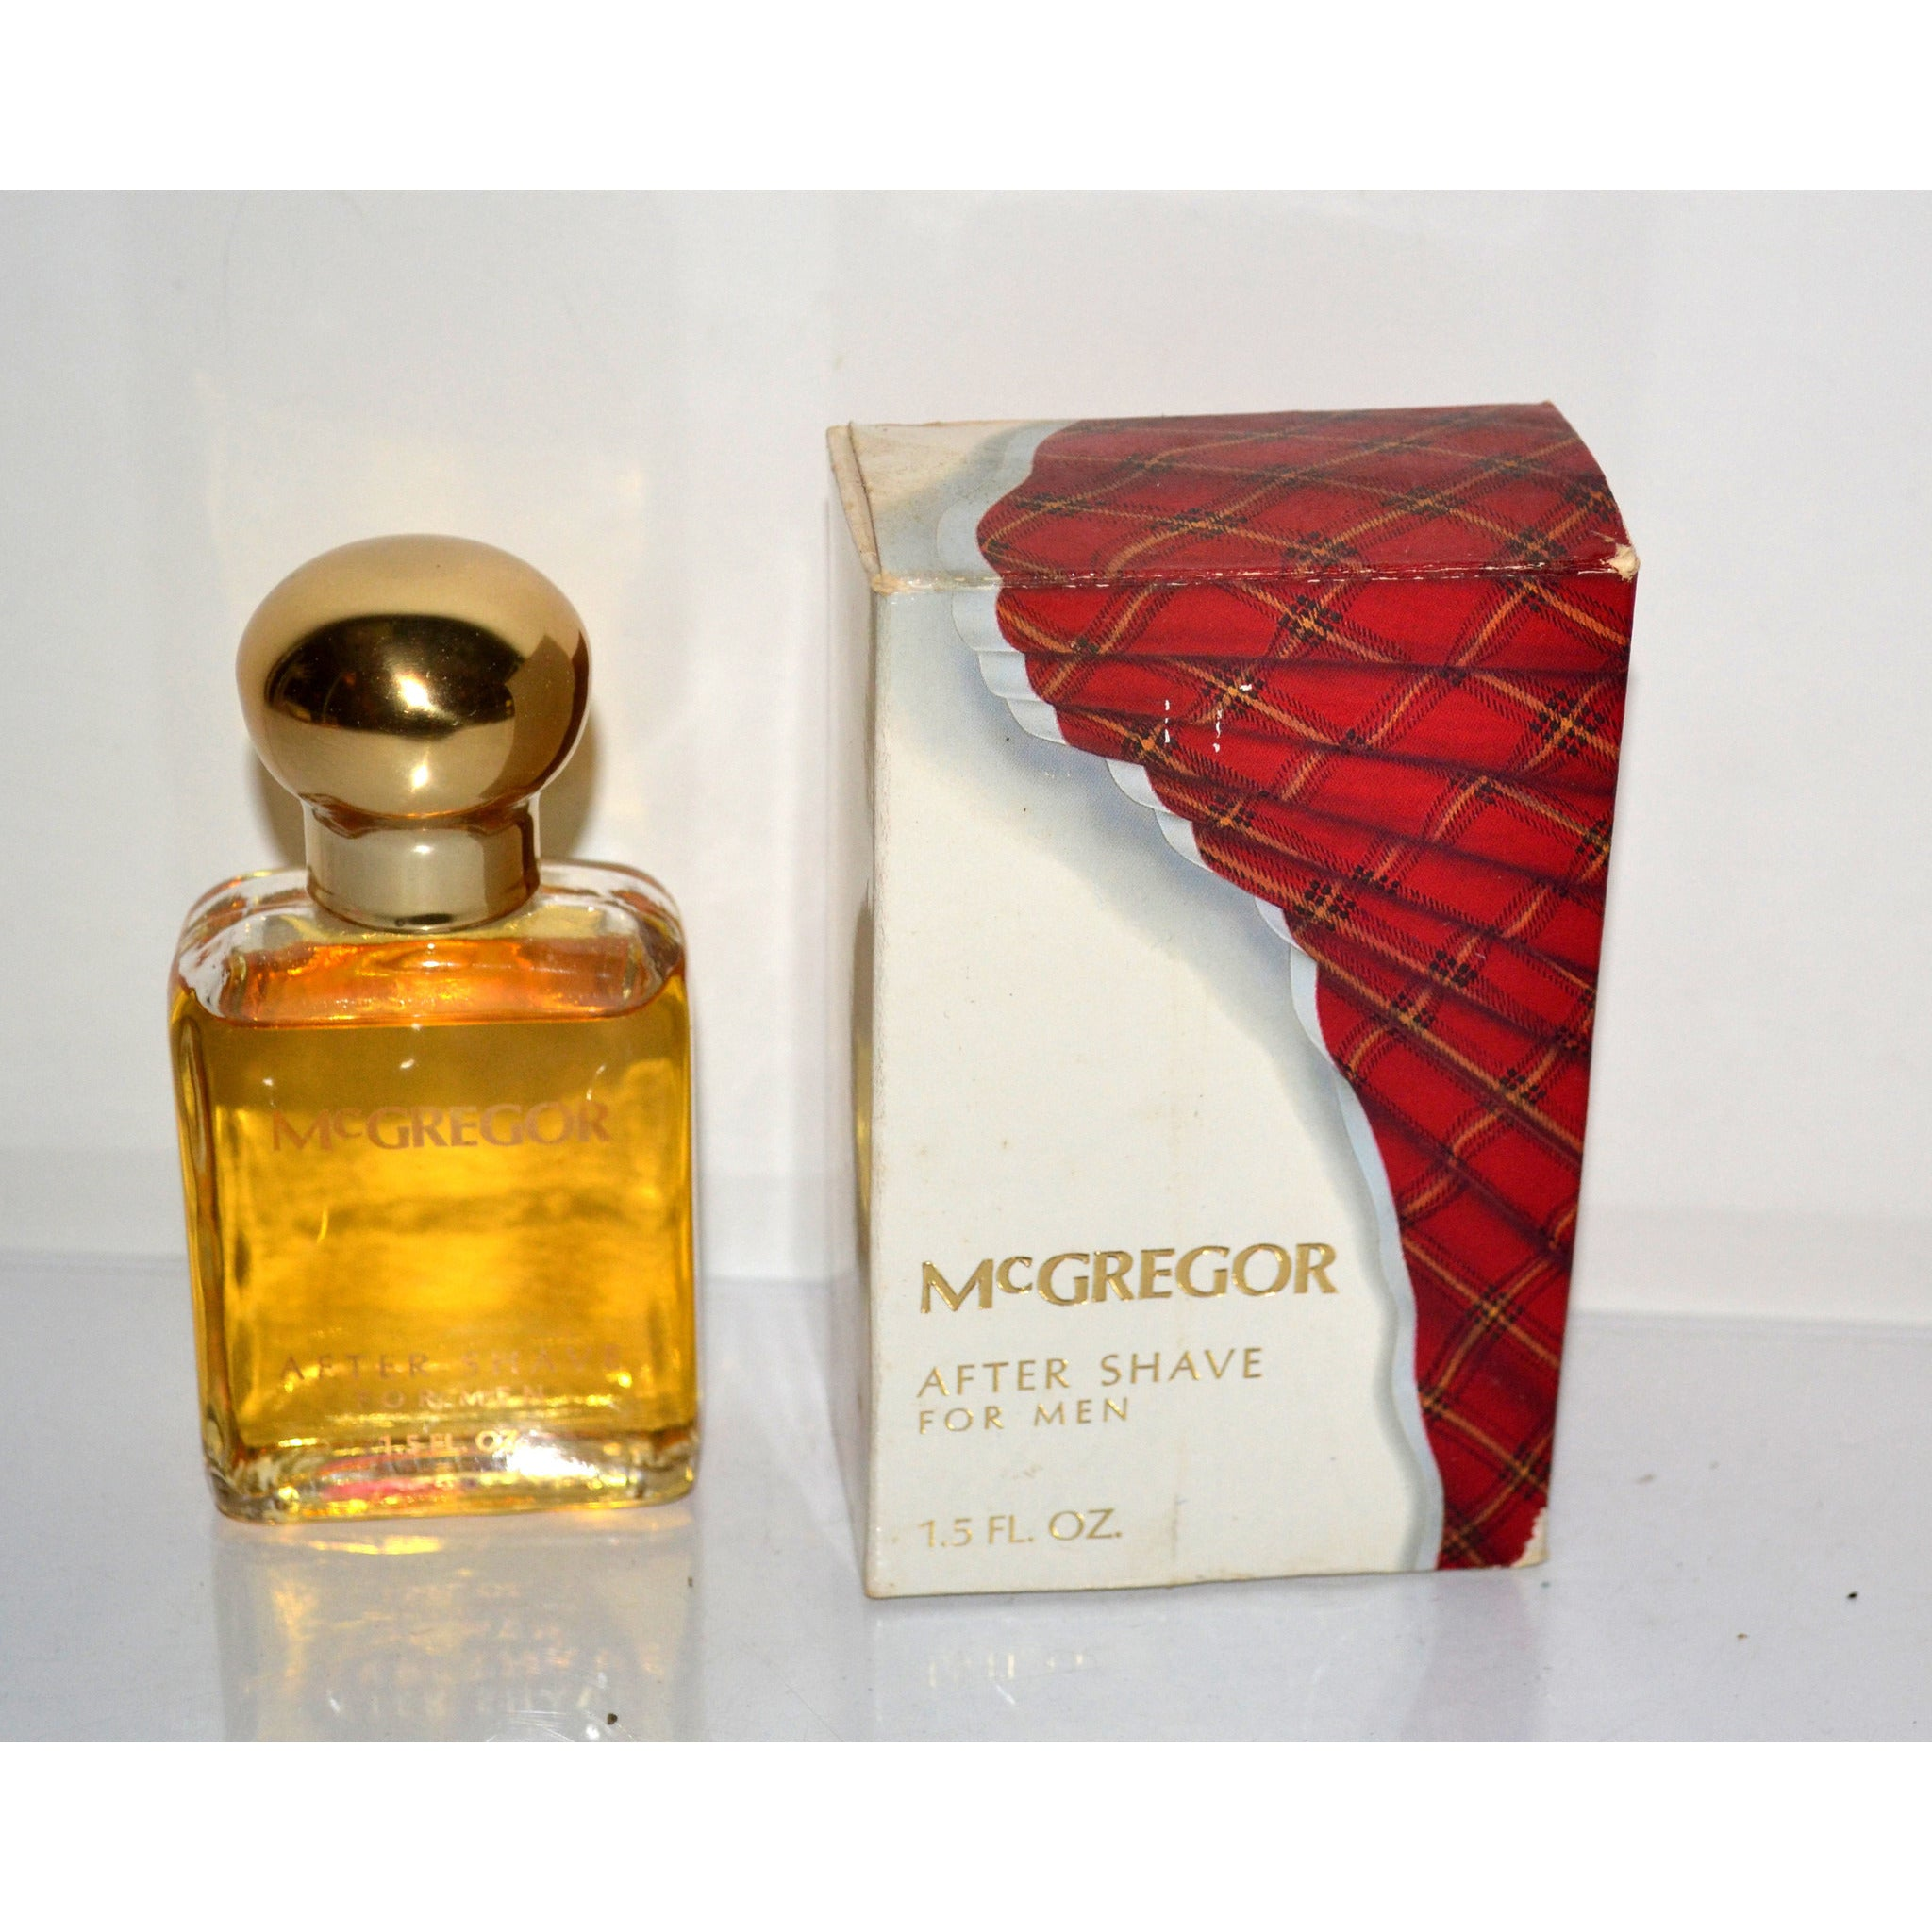 Vintage McGregor After Shave By Faberge